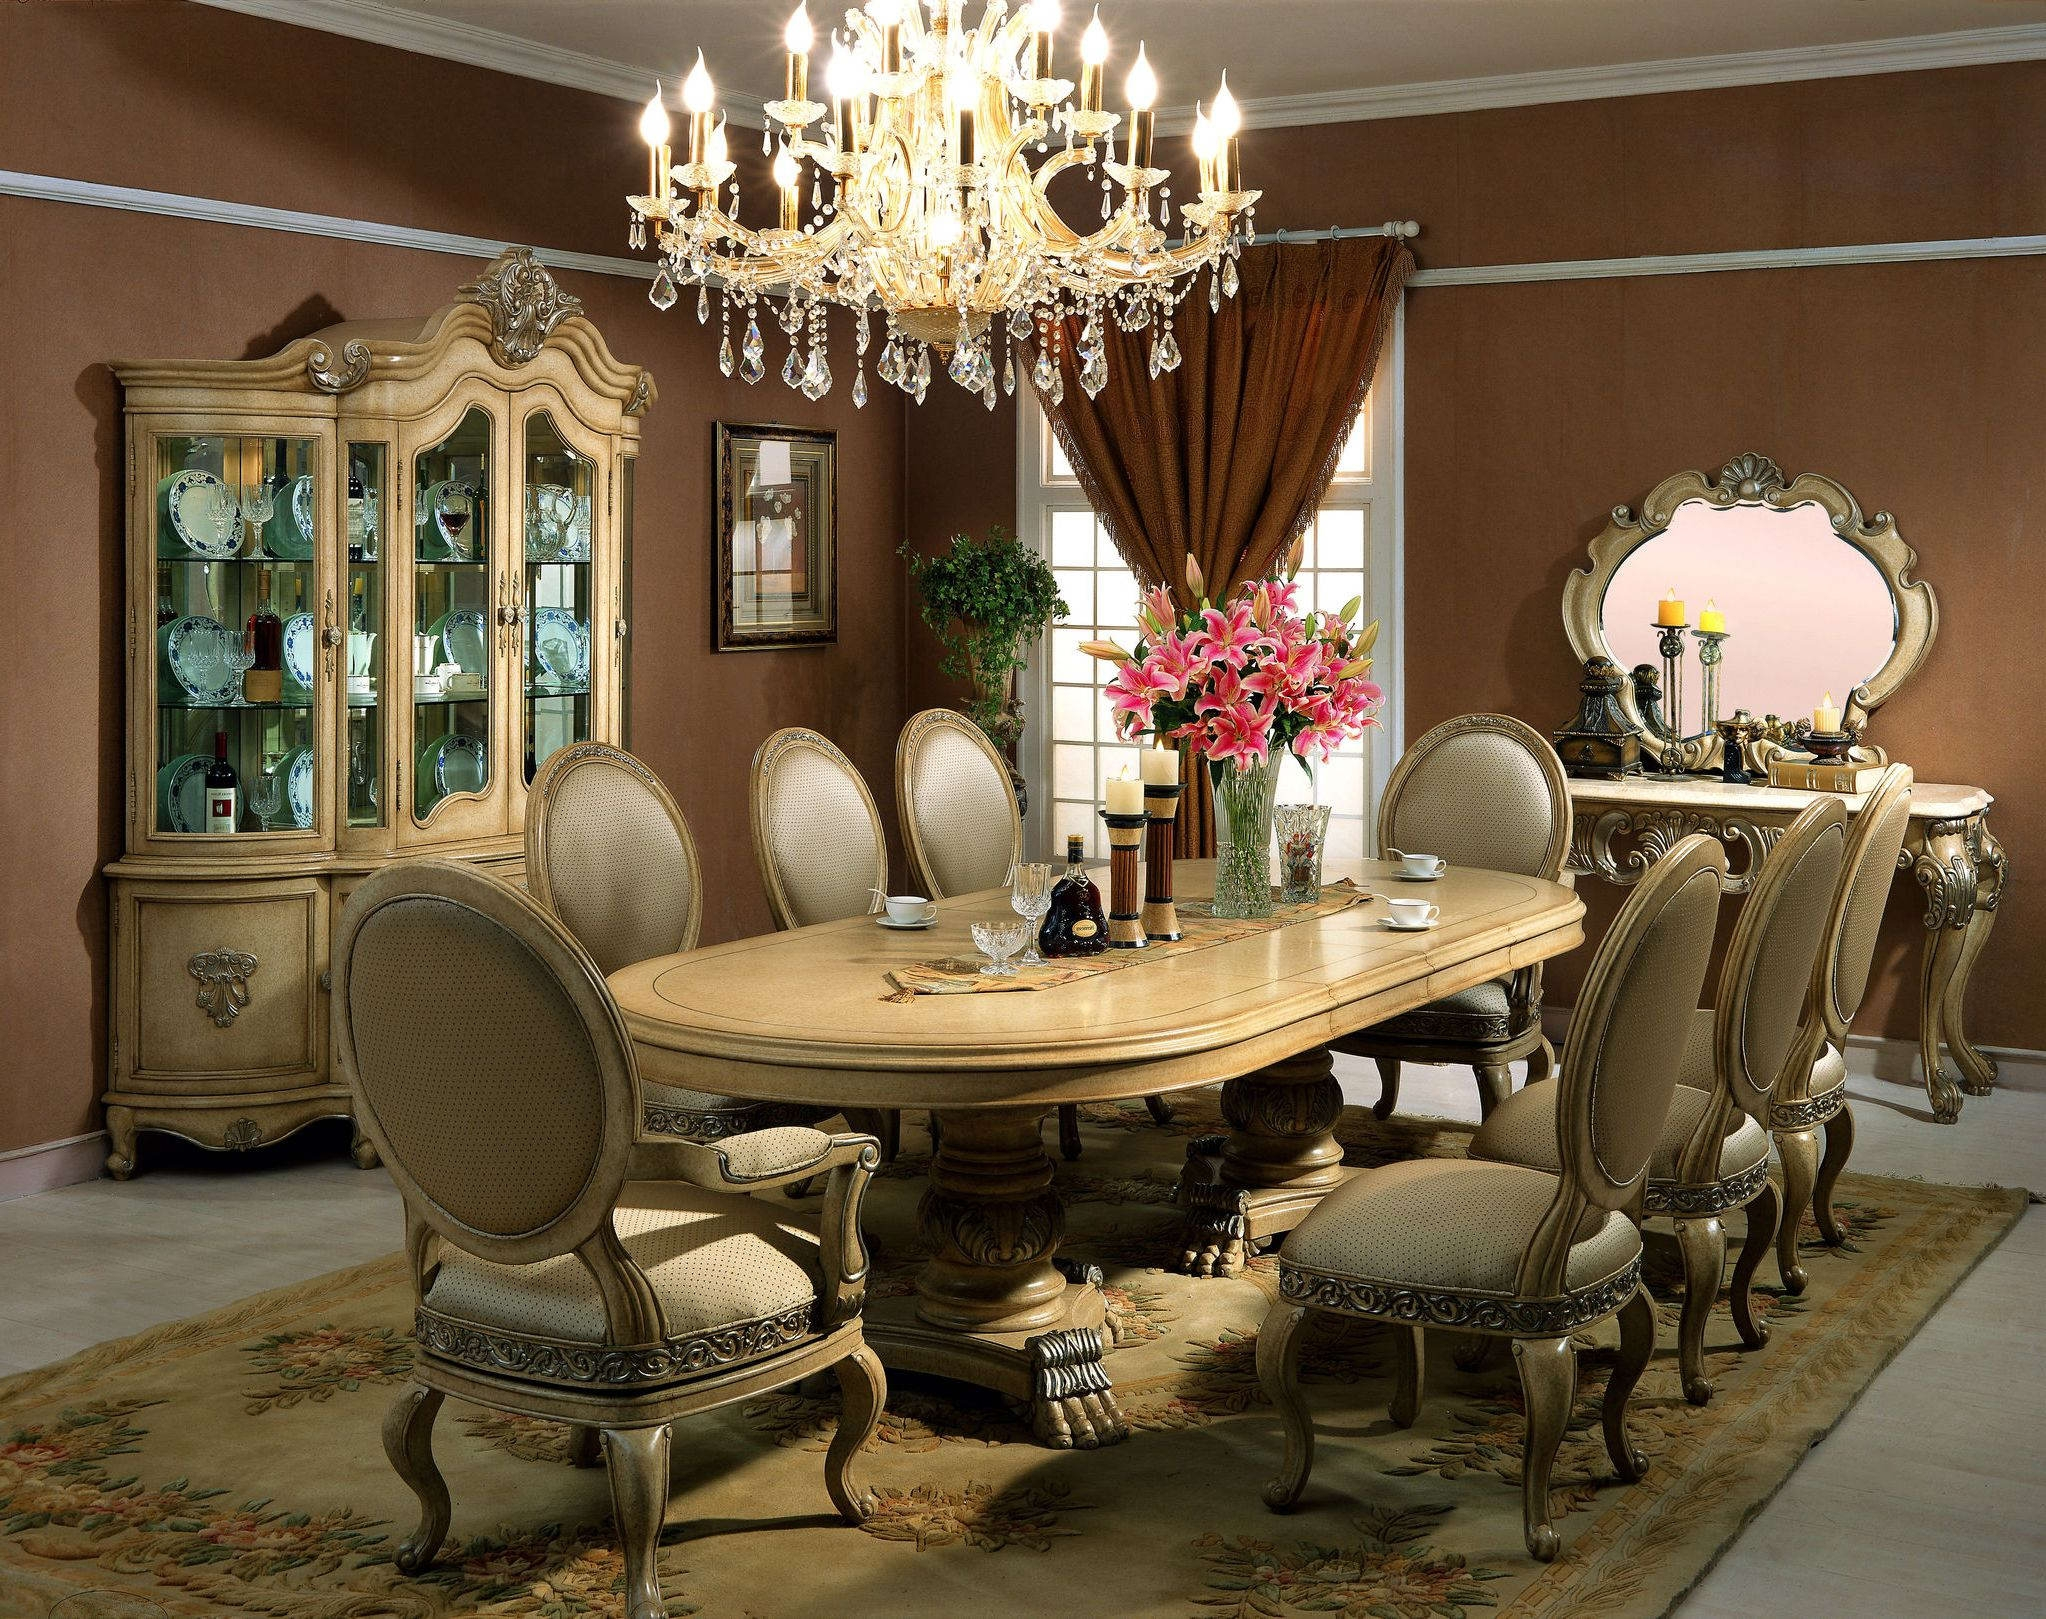 Dining Room Dining Chair Also Antique Crystal Chandelier Elegant Within Cream Crystal Chandelier (#8 of 12)